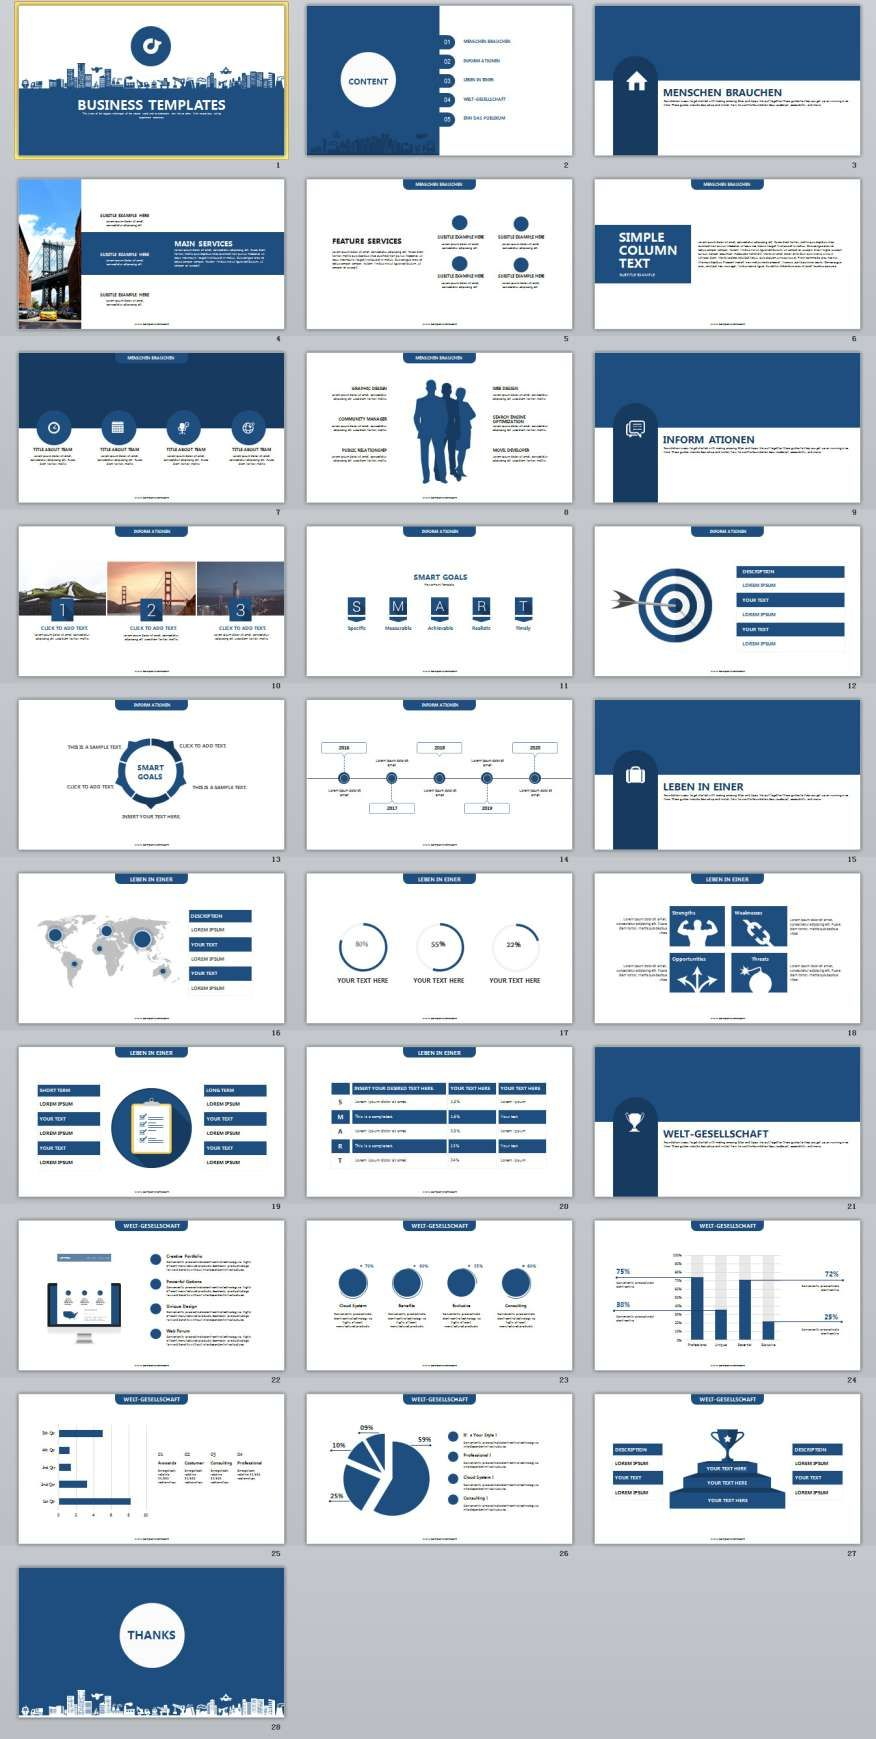 business report powerpoint templates marketing presentation presentation slides presentation layout business presentation